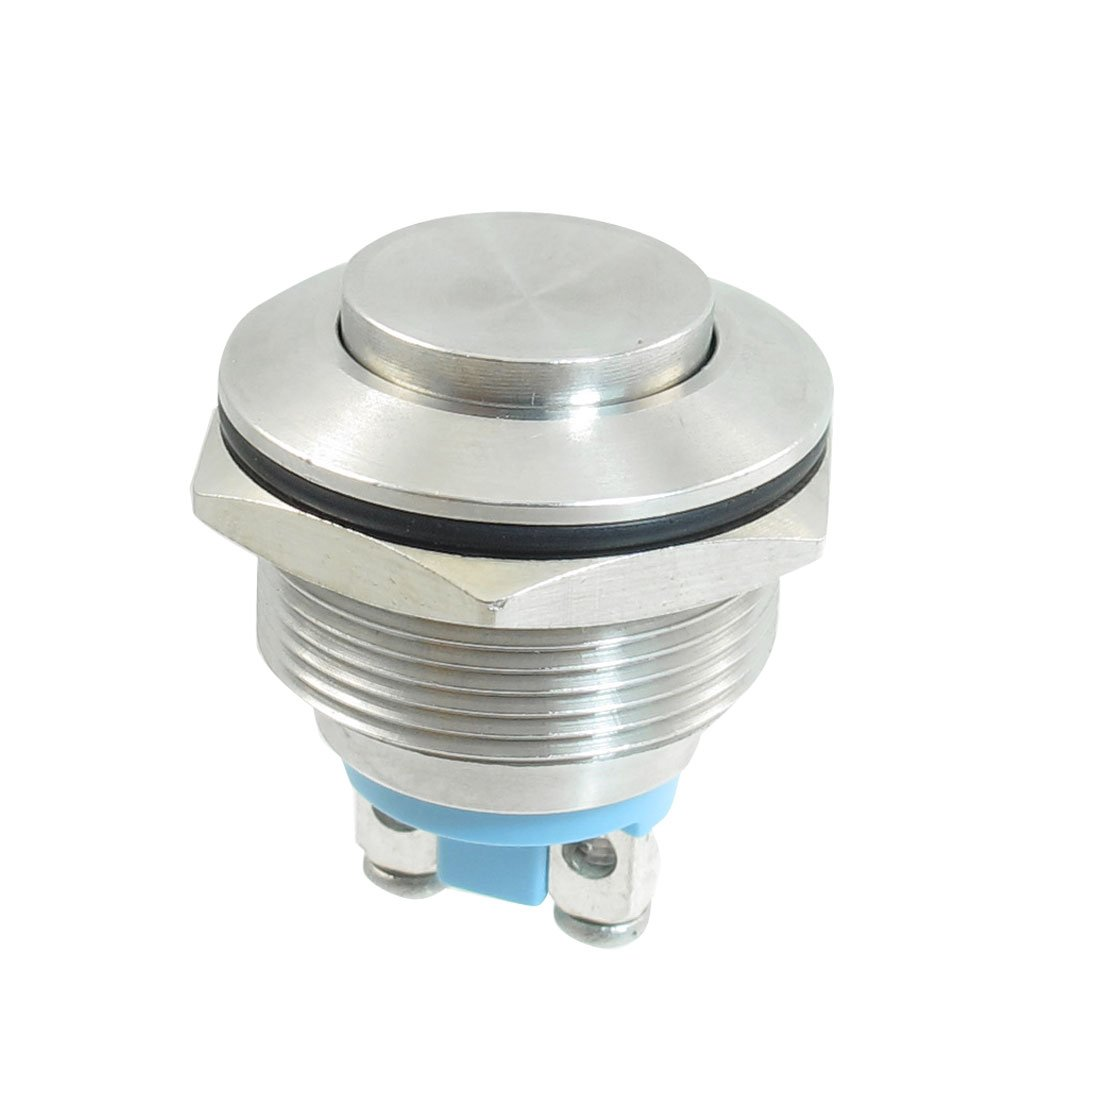 Amazon.com: uxcell Stainless Steel Momentary Push Button Switch 22mm ...